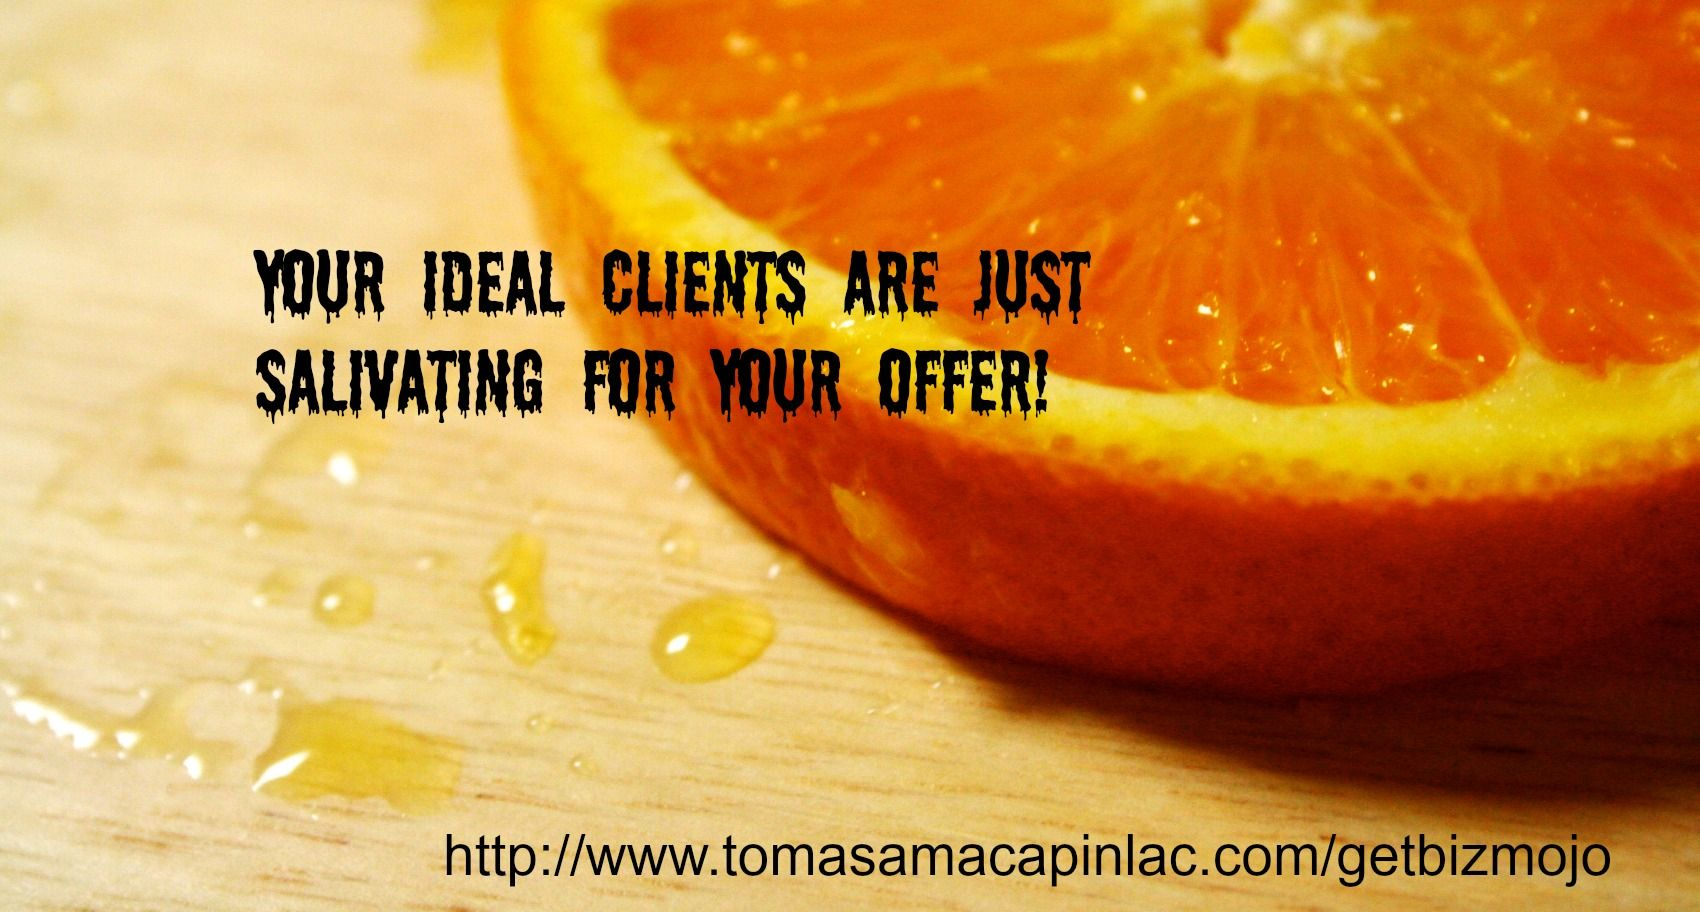 Juicy Sales Tips to have your ideal clients salivating to work with you